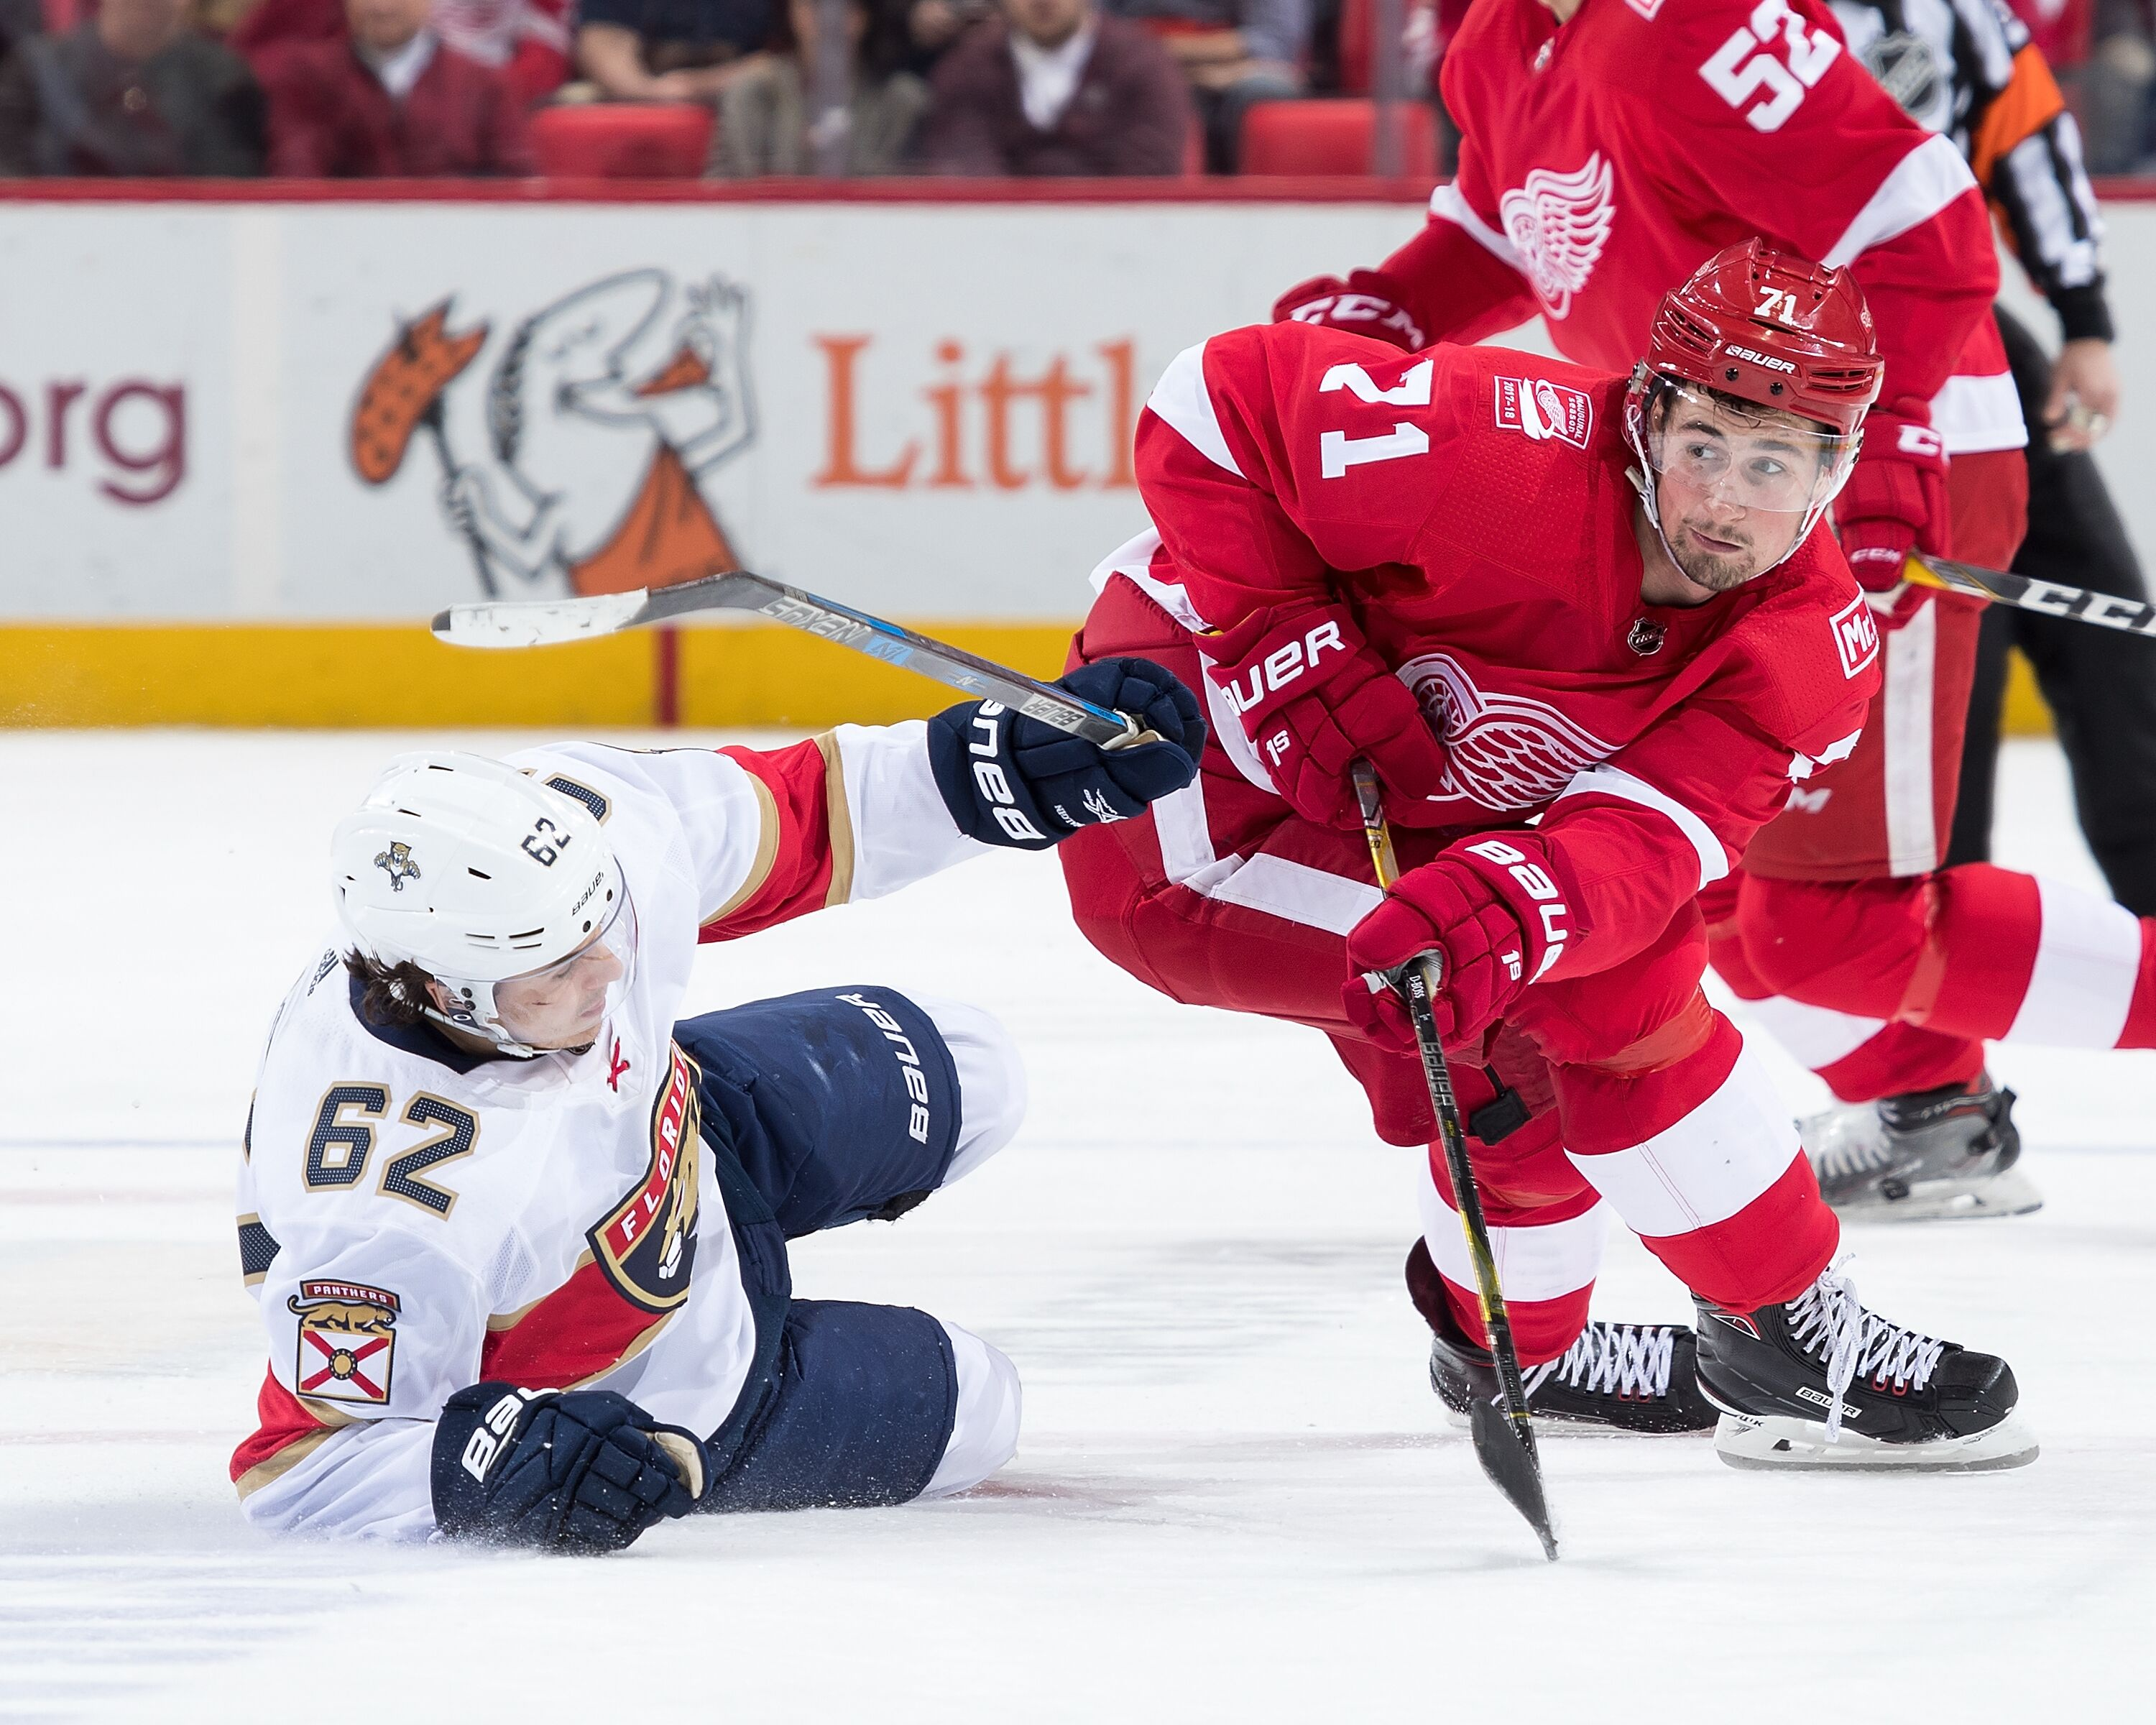 901688556-florida-panthers-v-detroit-red-wings.jpg